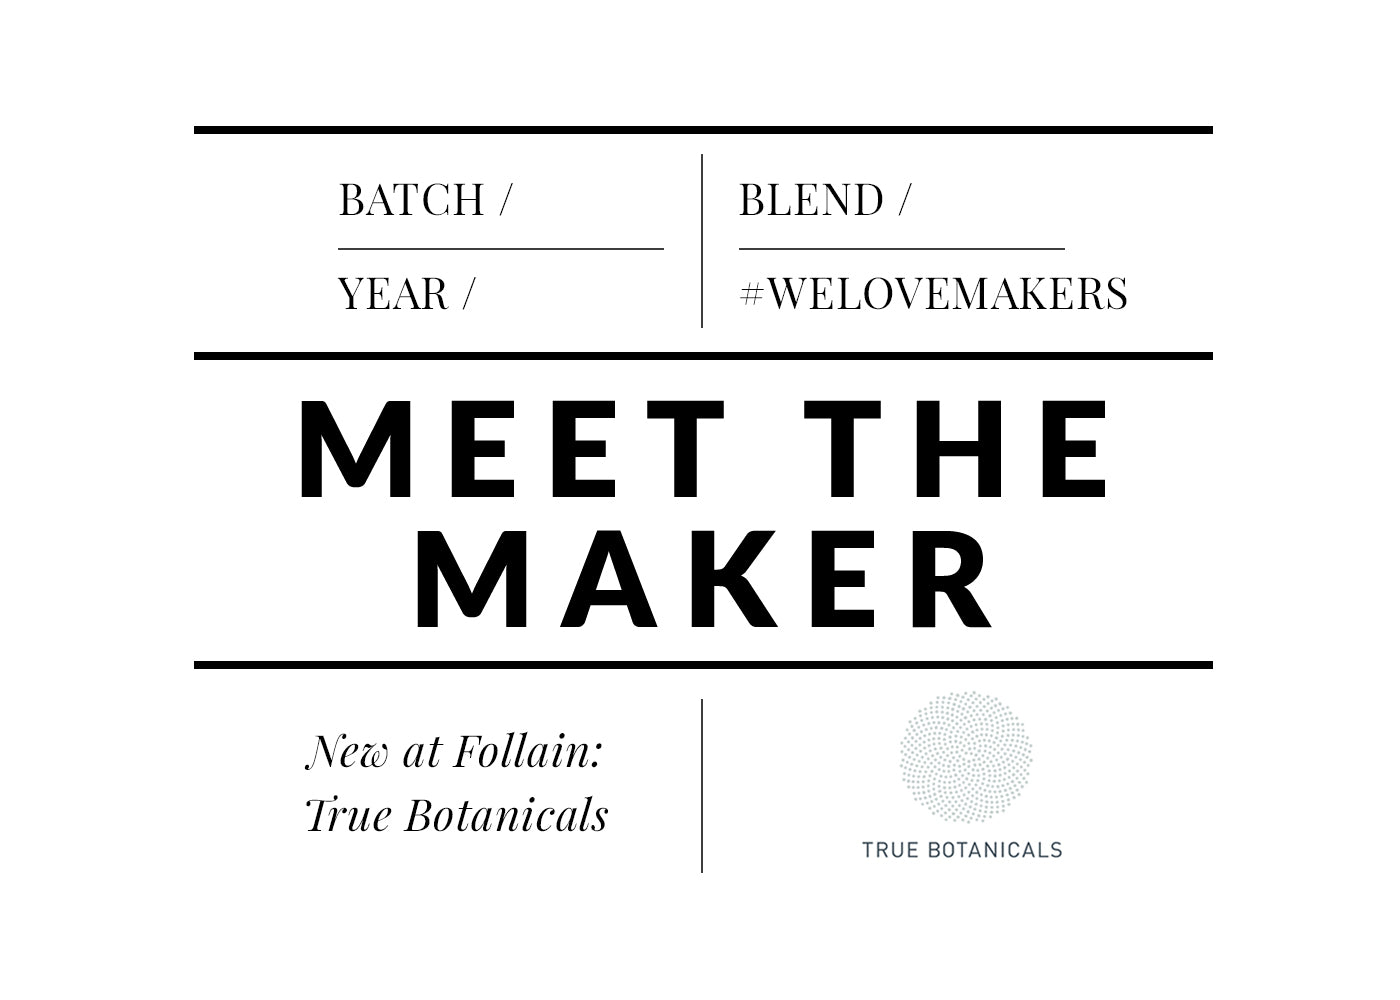 Meet the Maker: True Botanicals at Follain